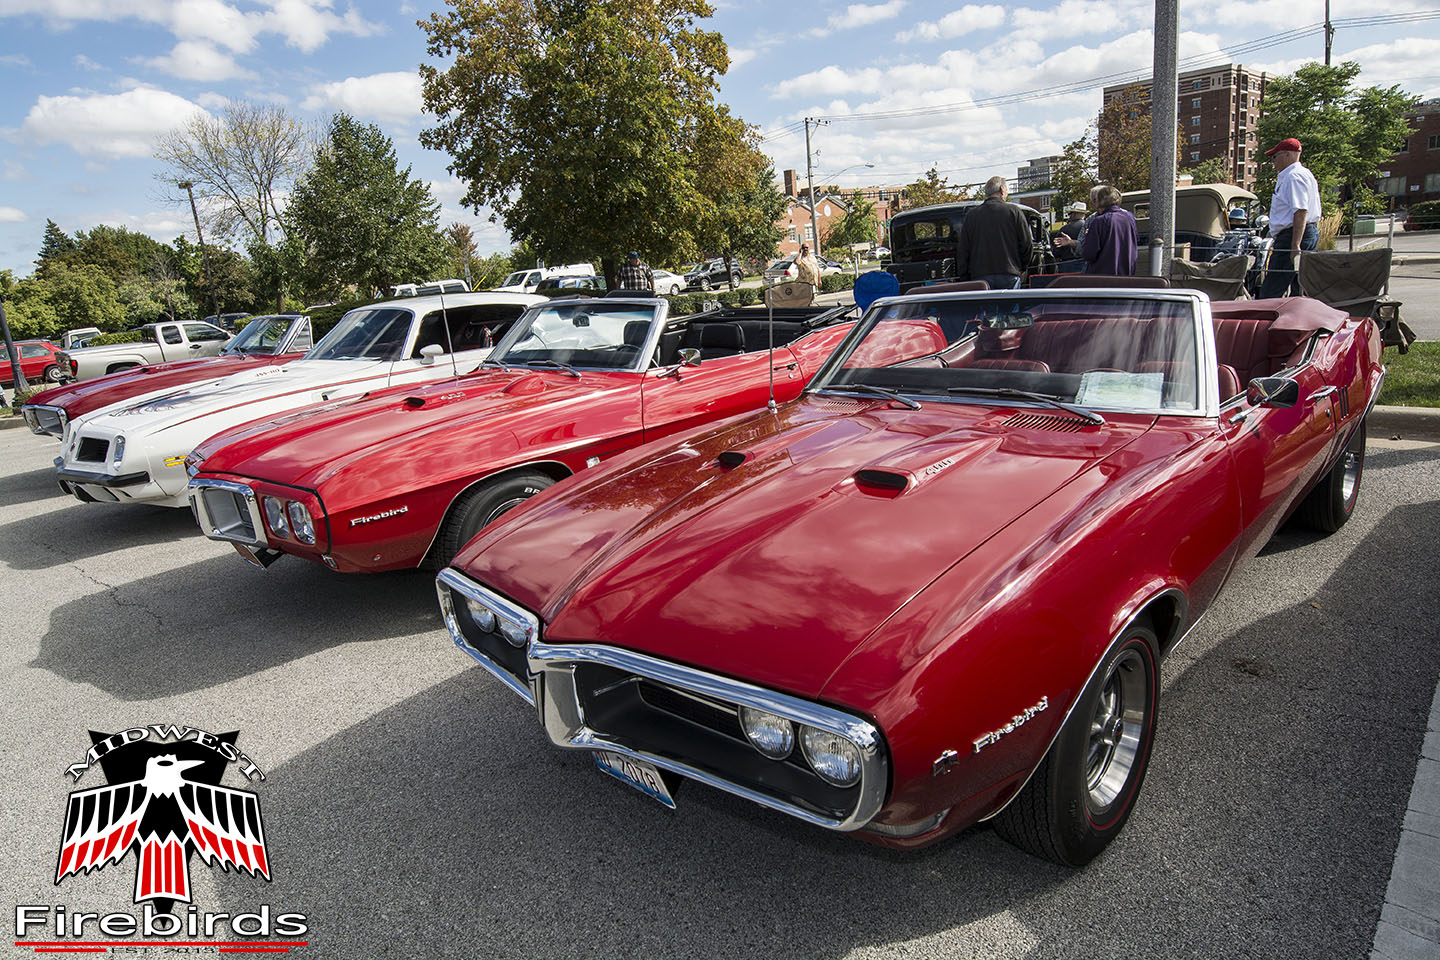 The MWF club cruised to the Motoring at the Musuem car show in Arlington Heights, IL.